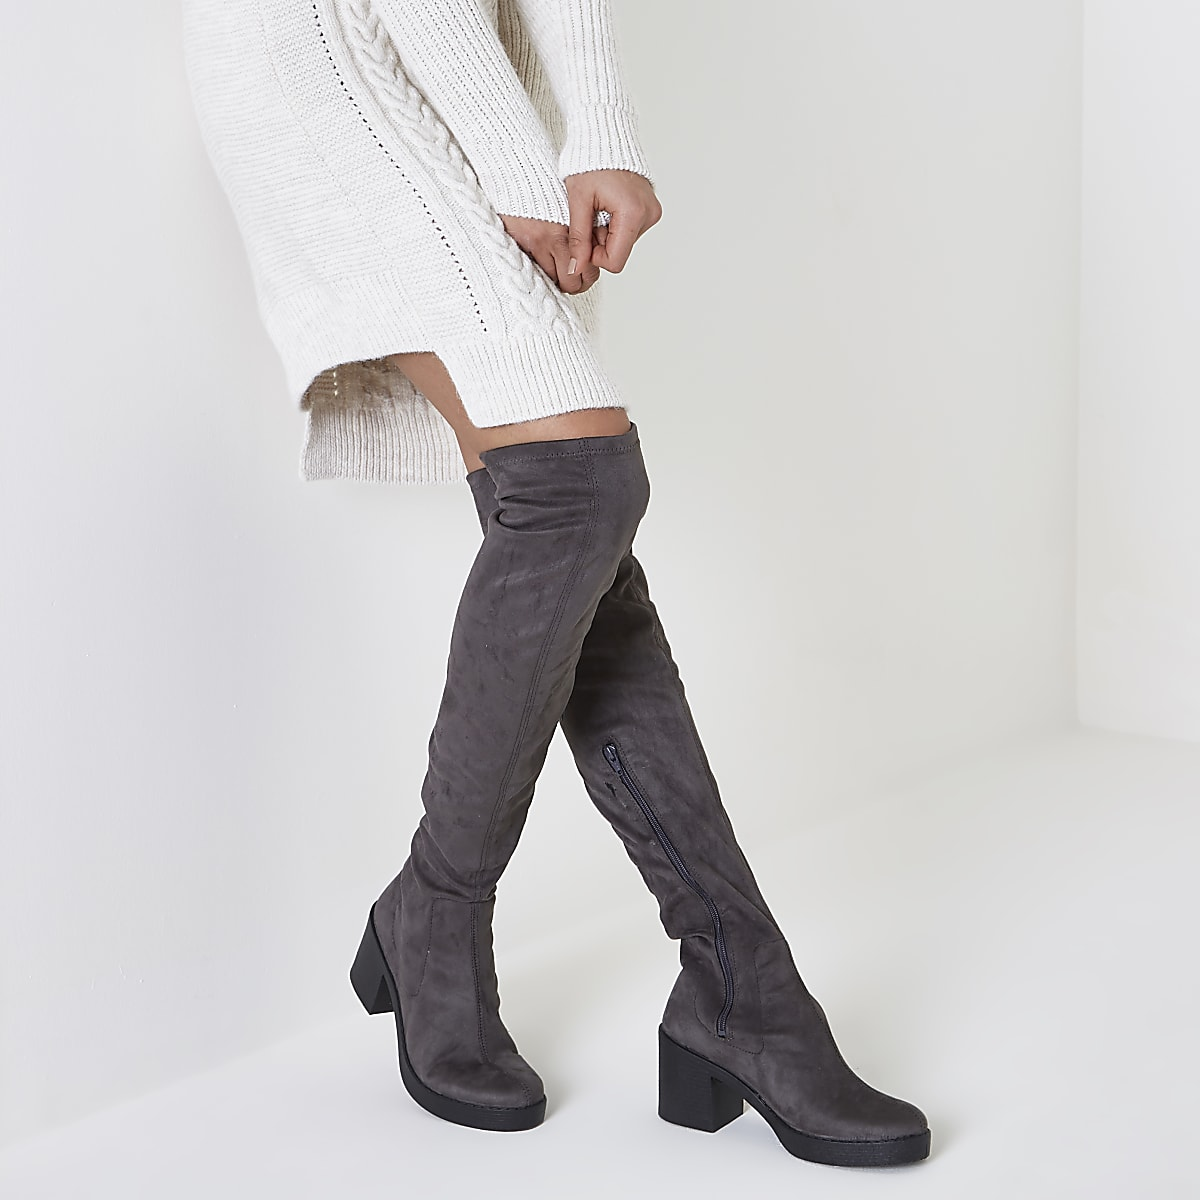 dd46932a9 Grey chunky sole over the knee boots - Boots - Shoes & Boots - women